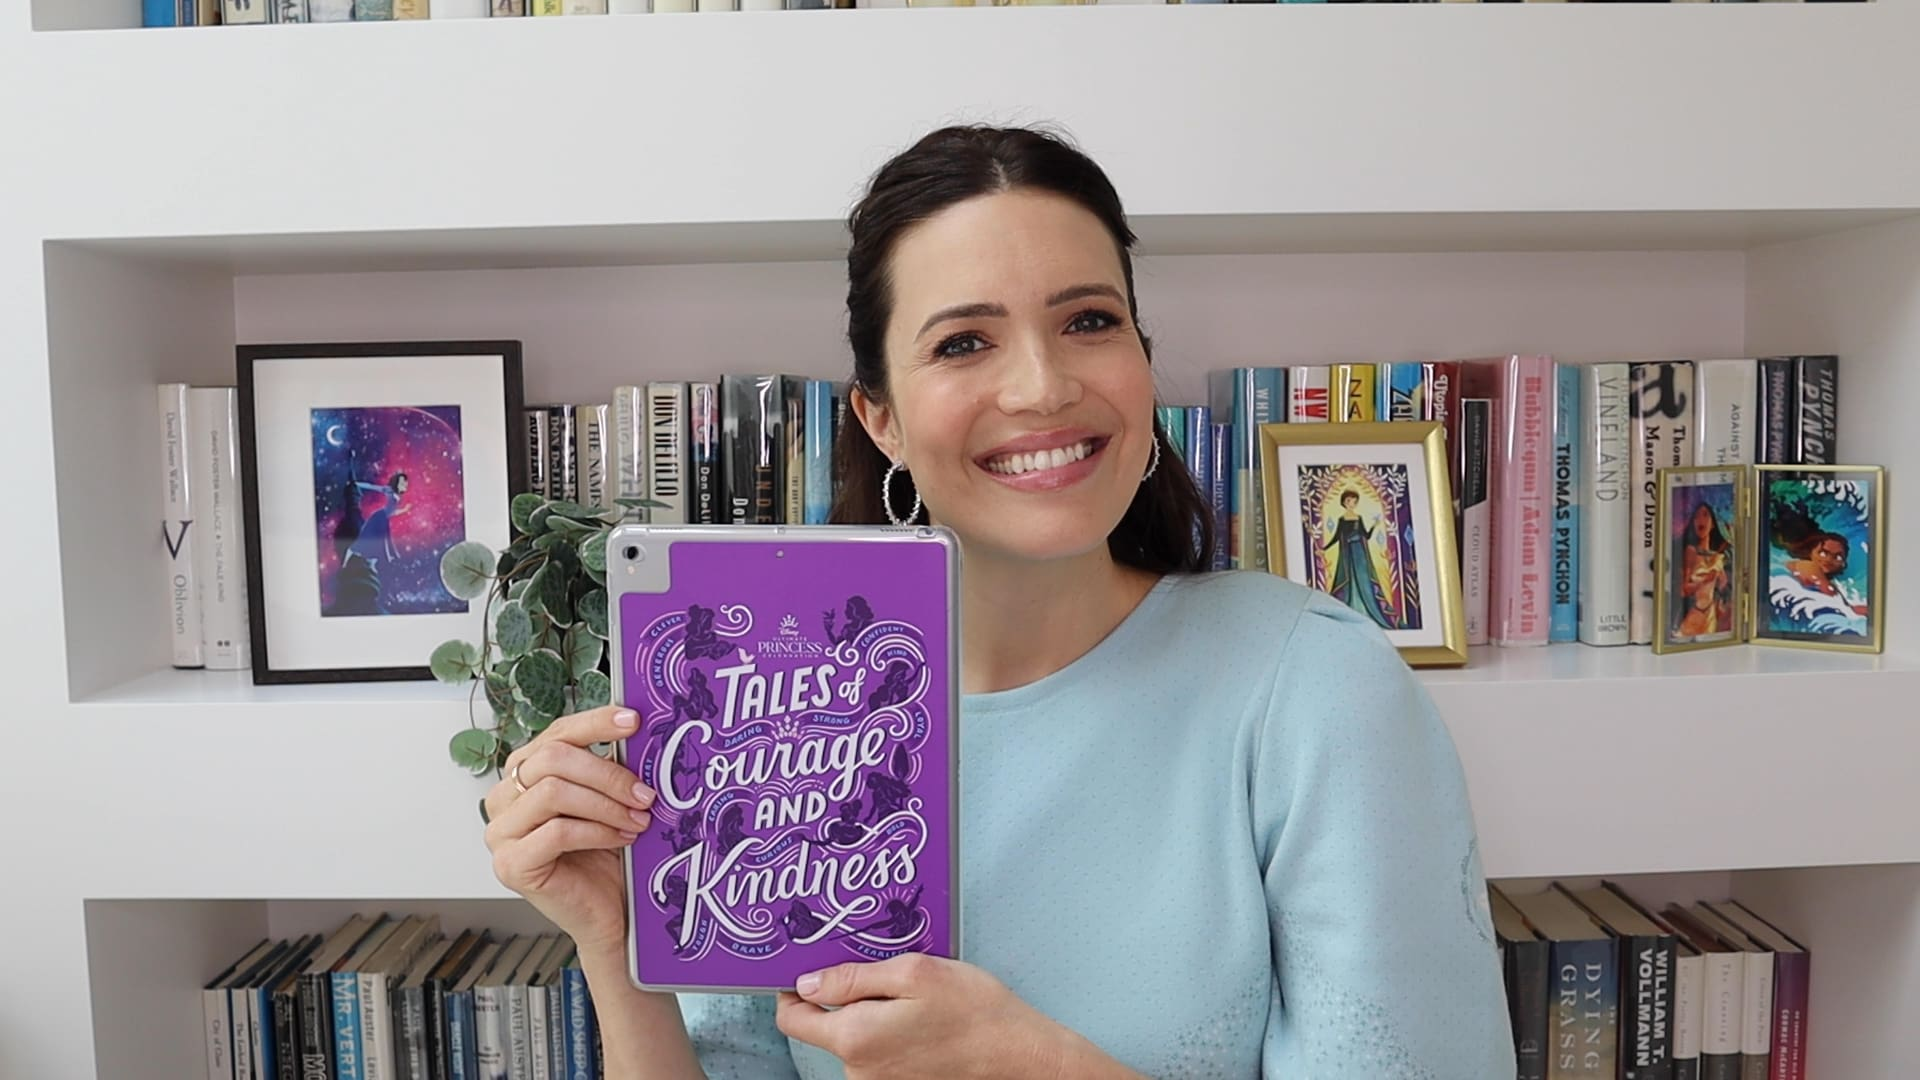 """Mandy Moore Reads from """"Tales of Courage and Kindness"""""""